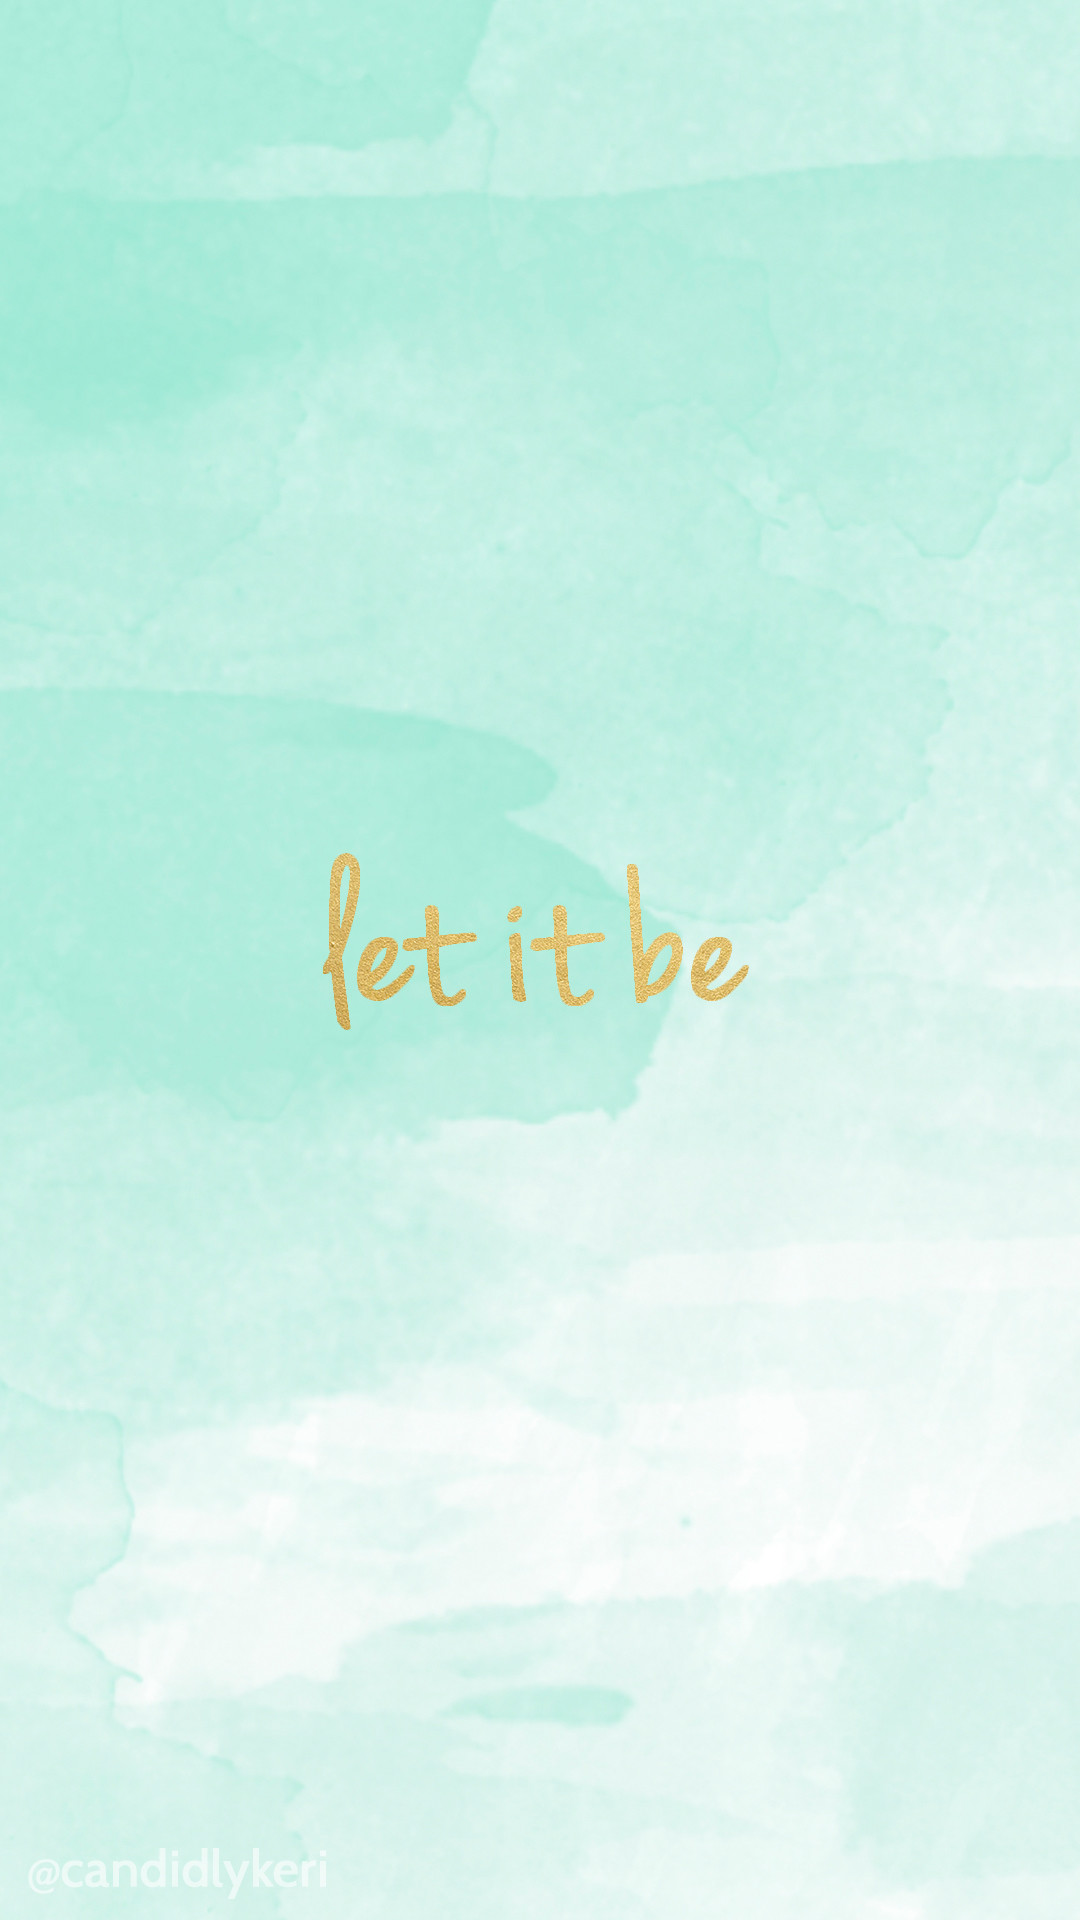 Let it be gold lettering with blue watercolor background wallpaper you can  download for free on